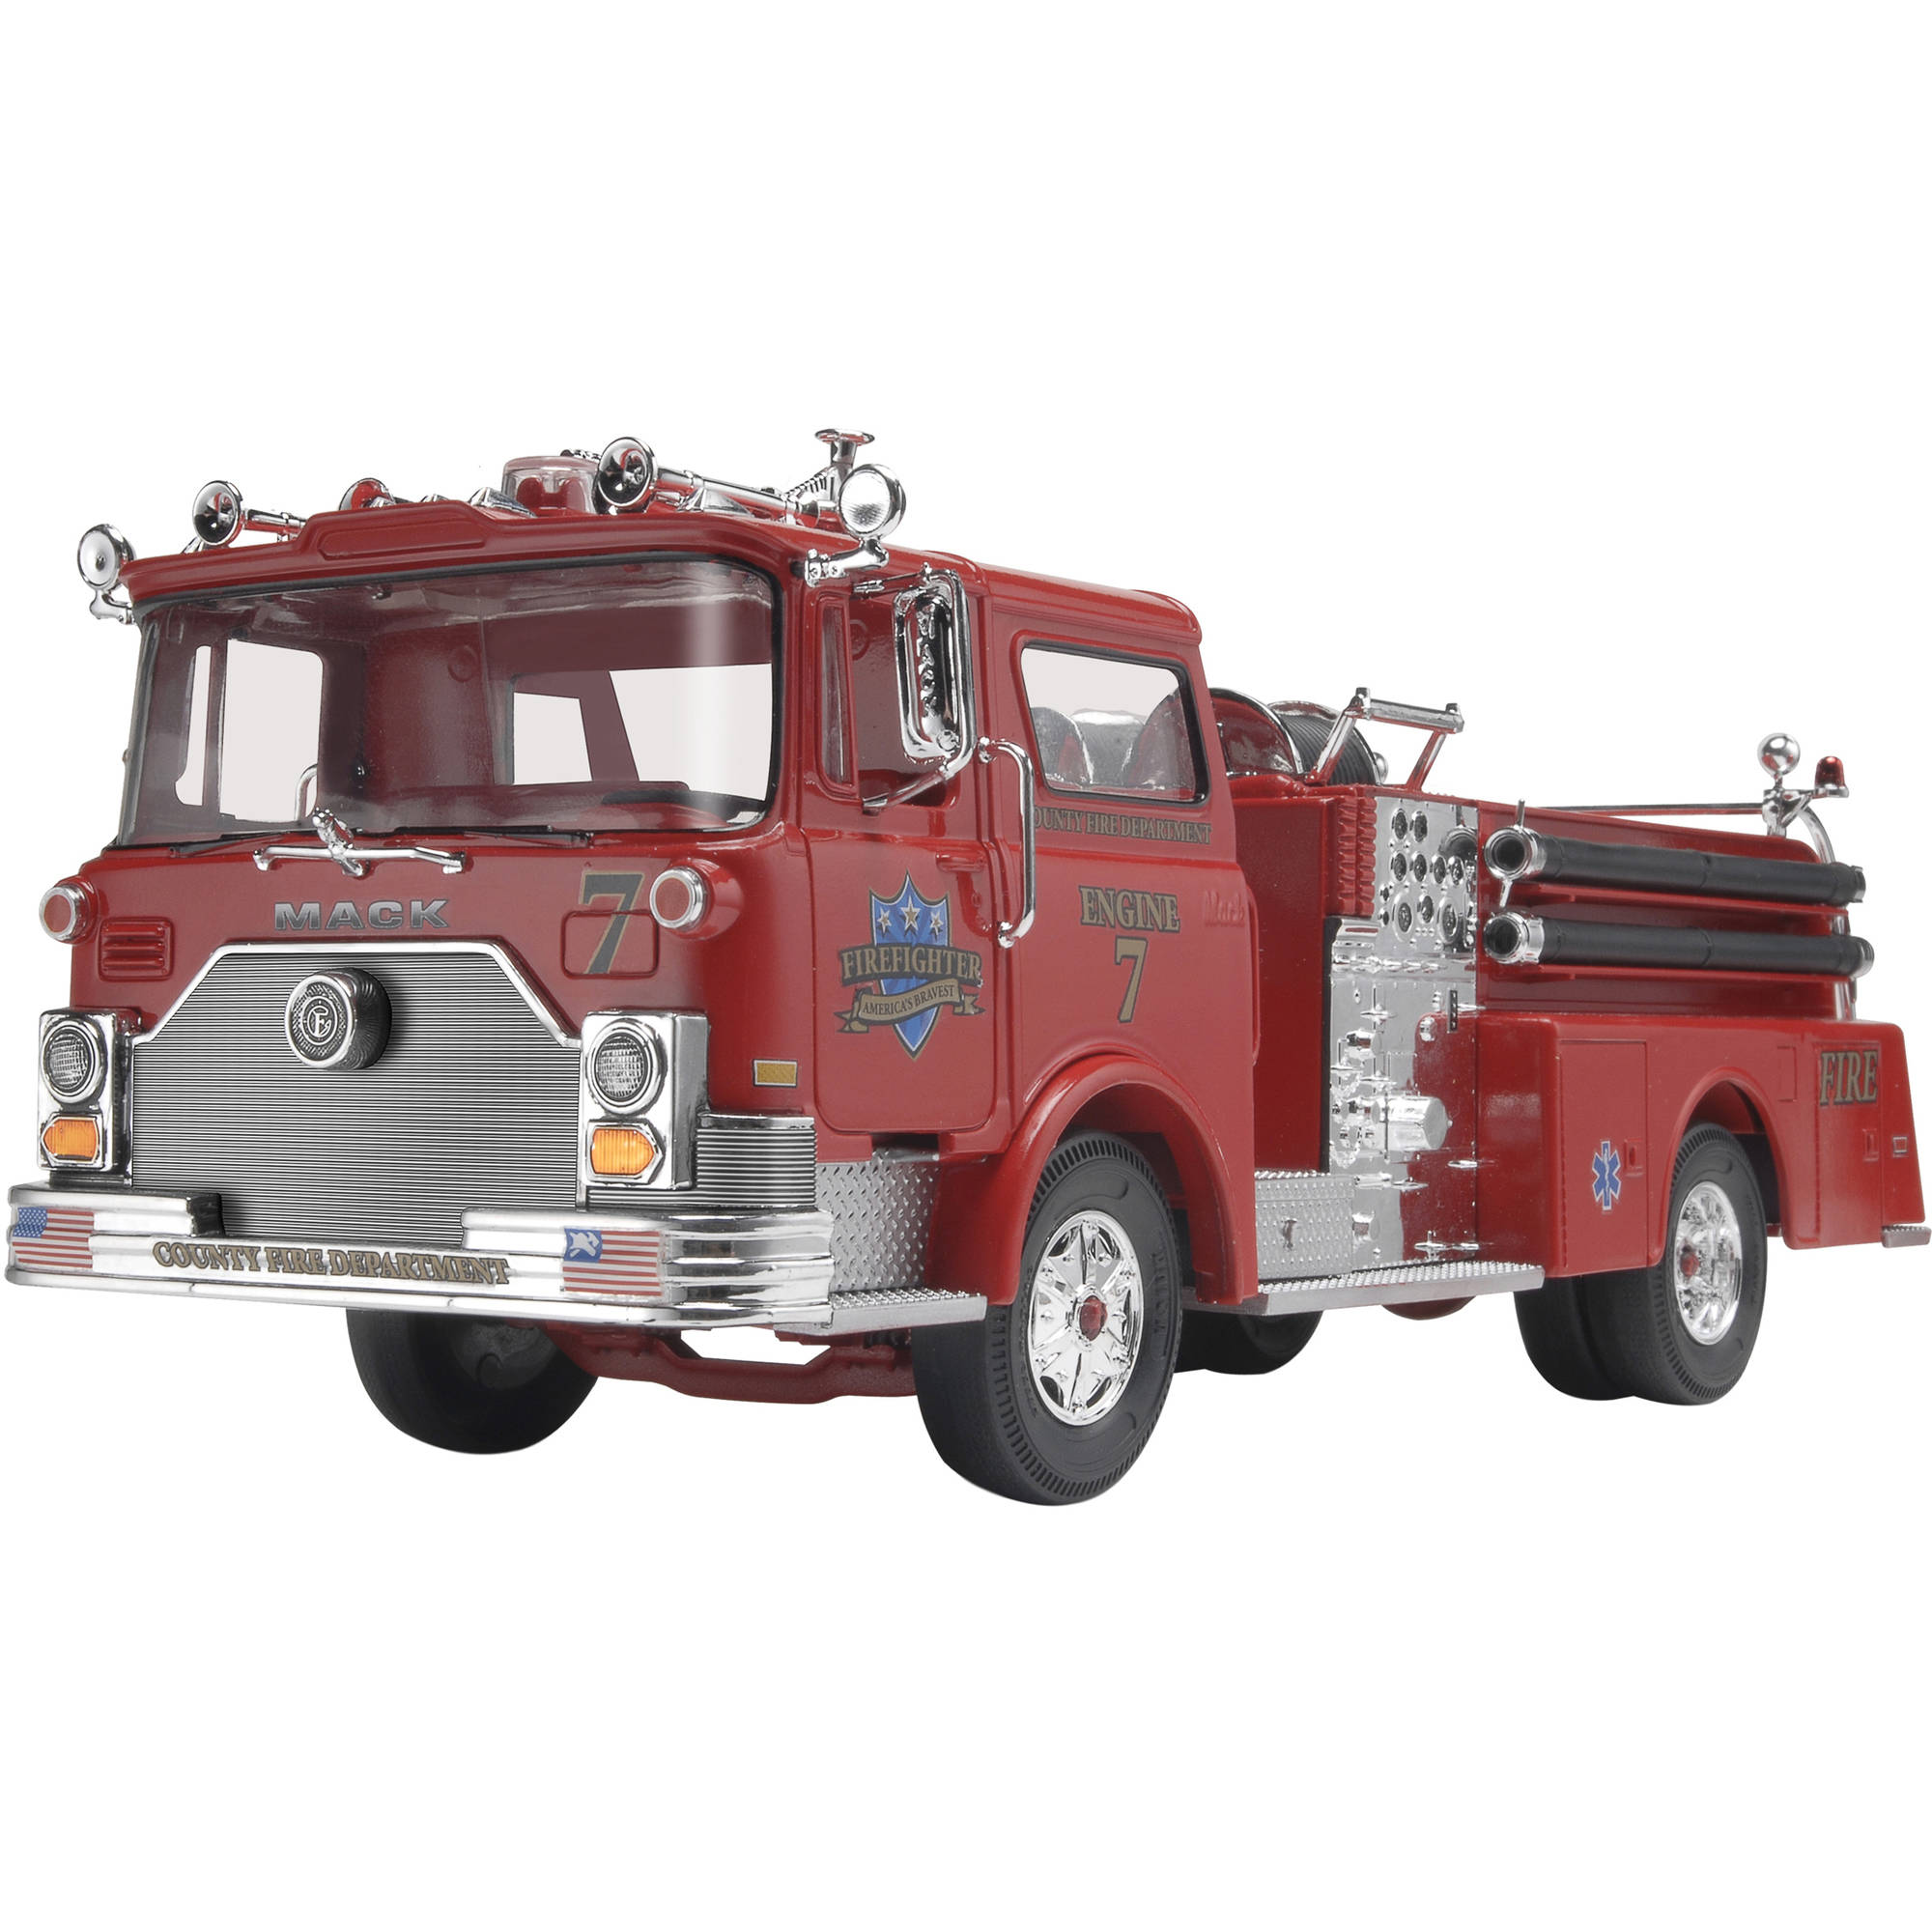 Revell SnapTite Max 1:32 Mack Fire Pumper Plastic Model Kit